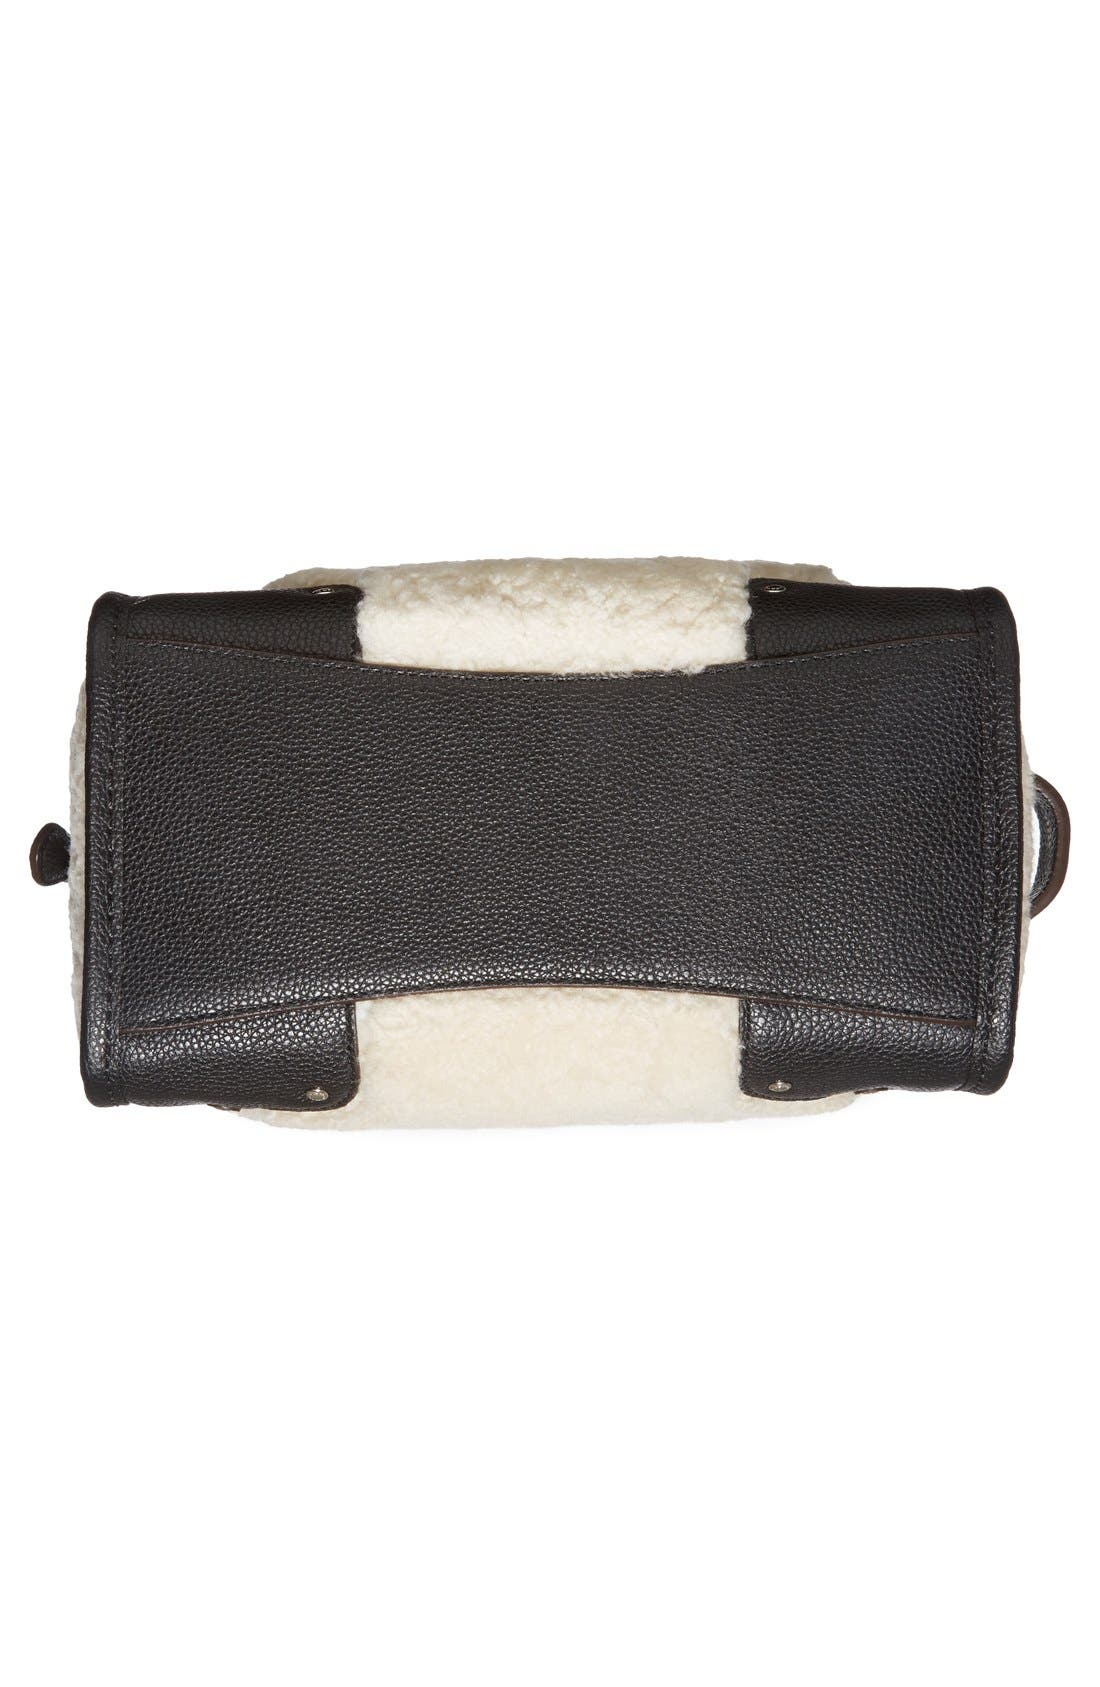 COACH,                             'Rhyder 24' Genuine Shearling & Leather Satchel,                             Alternate thumbnail 2, color,                             900